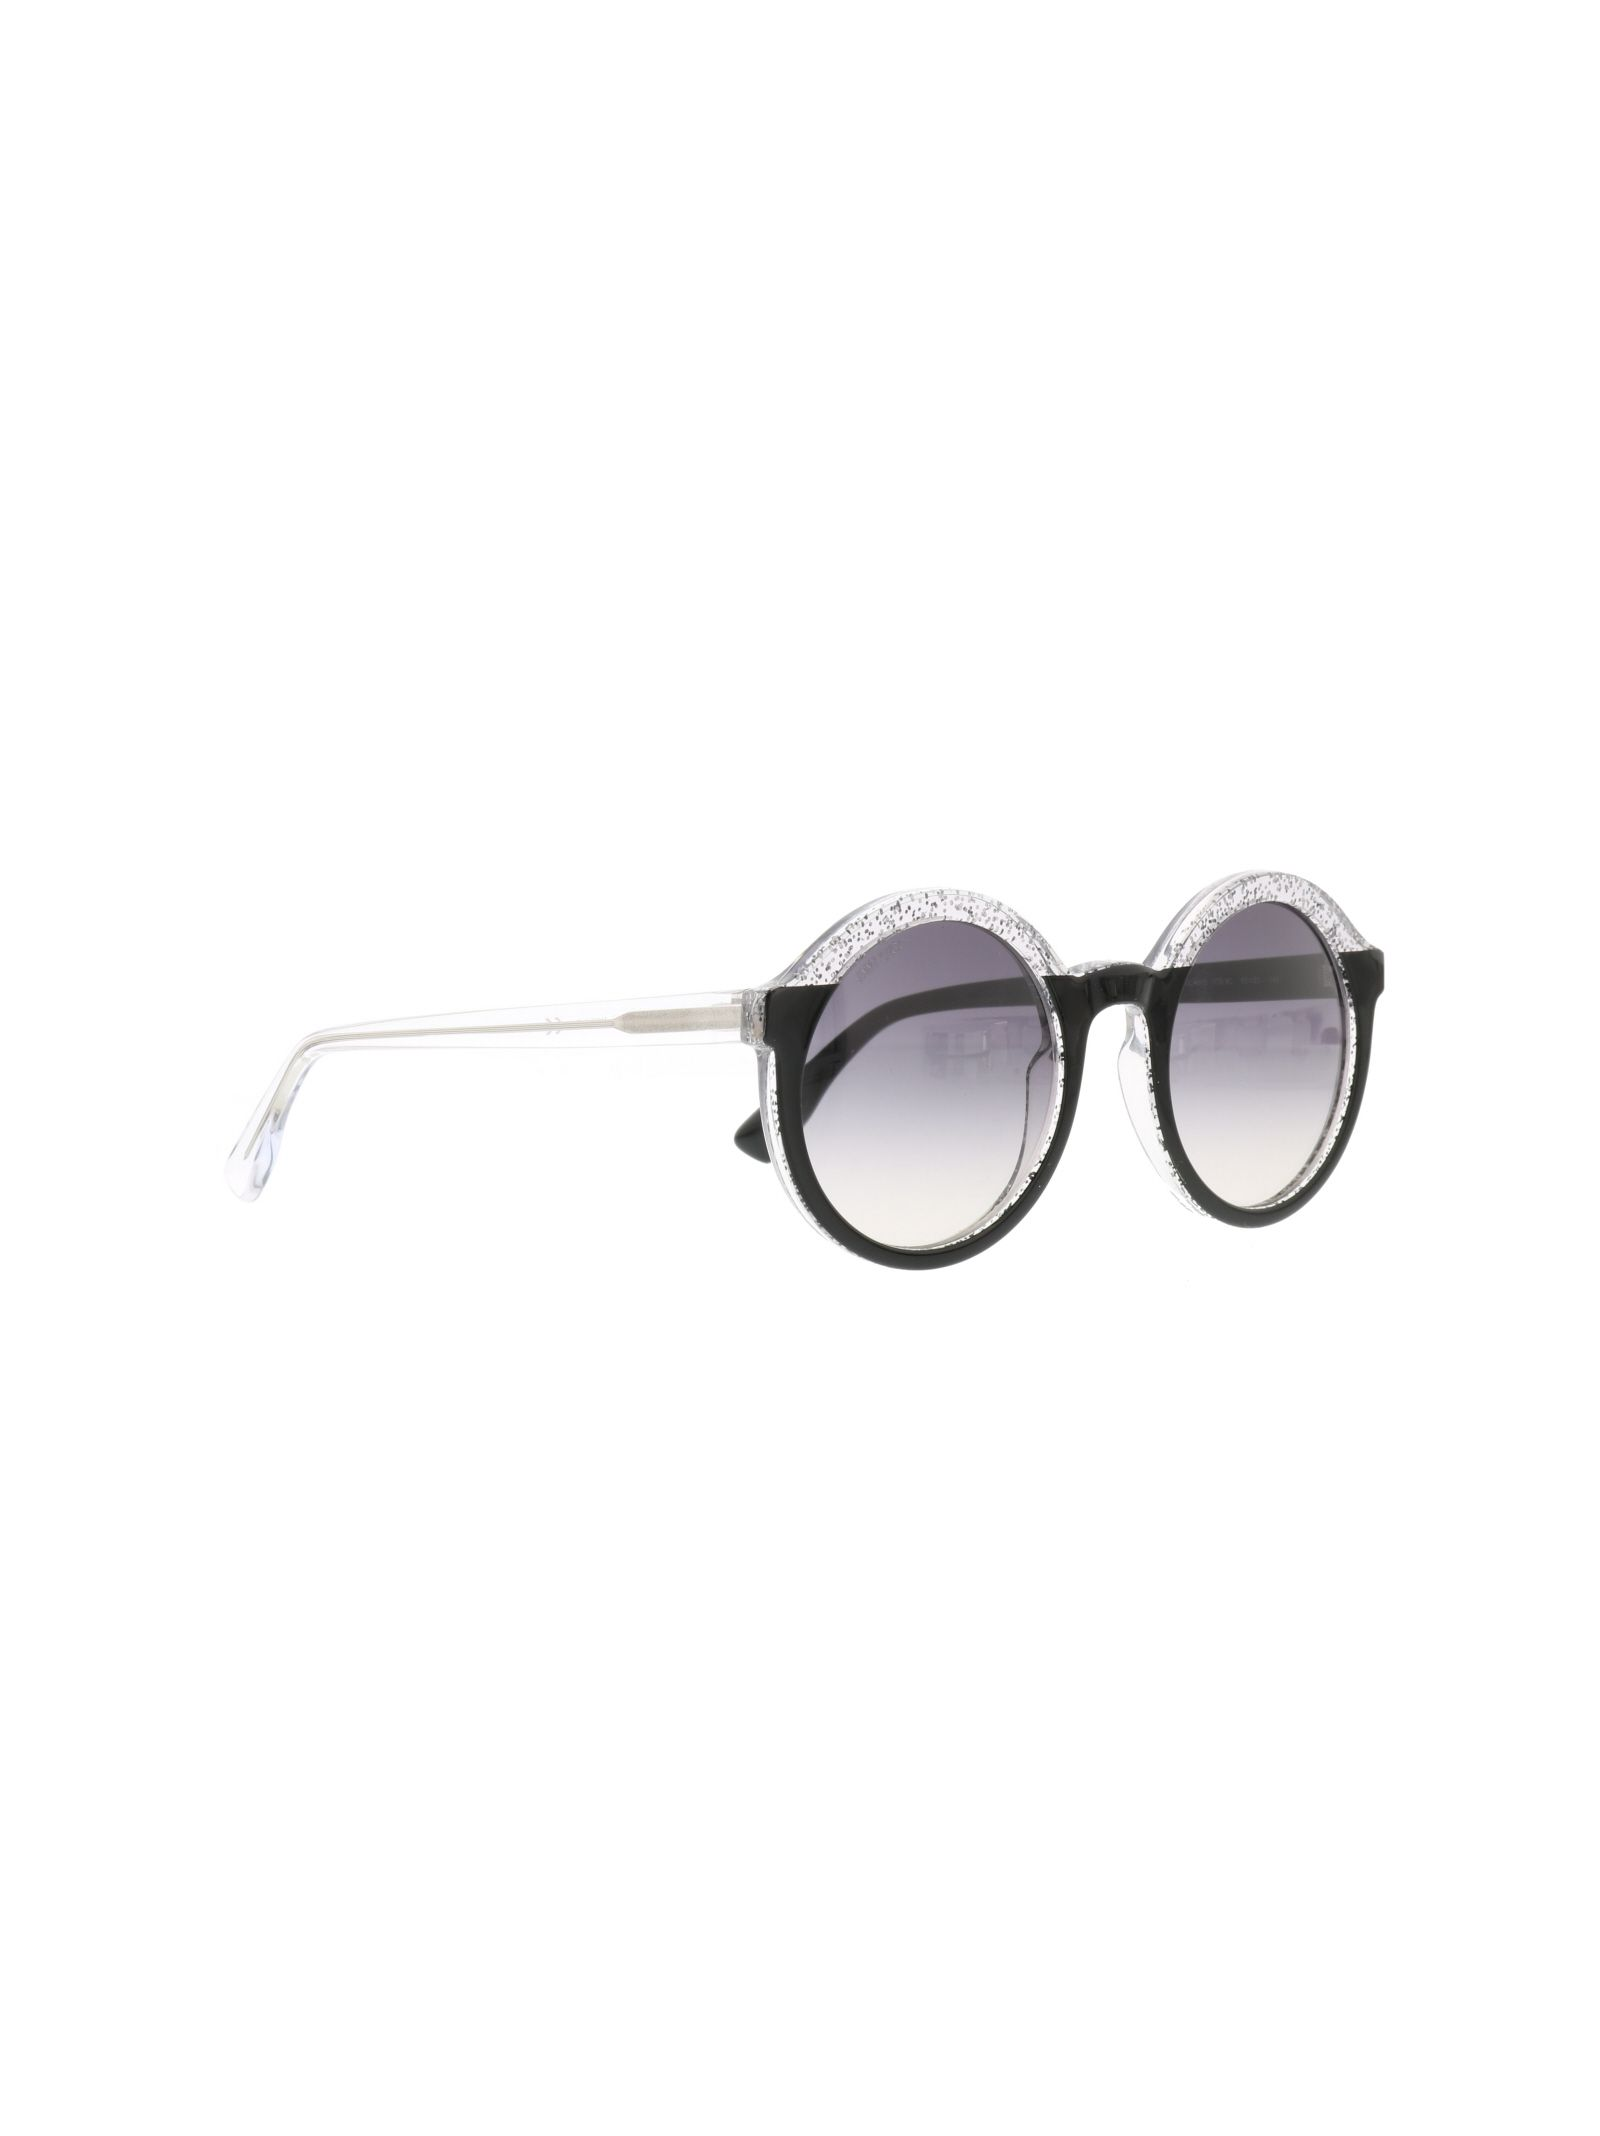 Jimmy Choo Glam Sunglasses - Jimmy Choo - Andrea 2